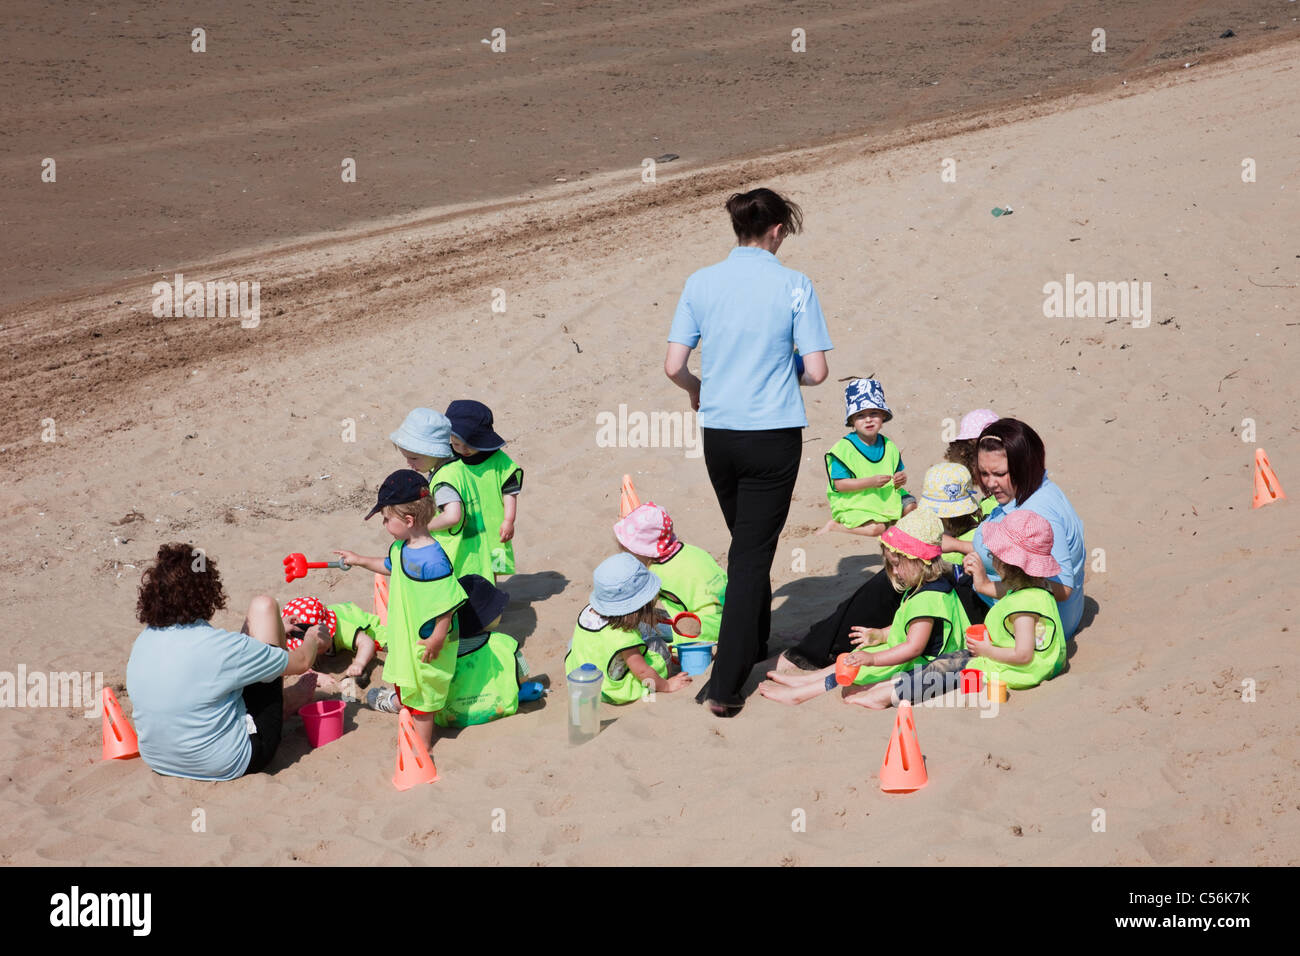 Group of nursery school children wearing hi-vis safety vests in a coned area on a trip to a sandy beach at the seaside - Stock Image